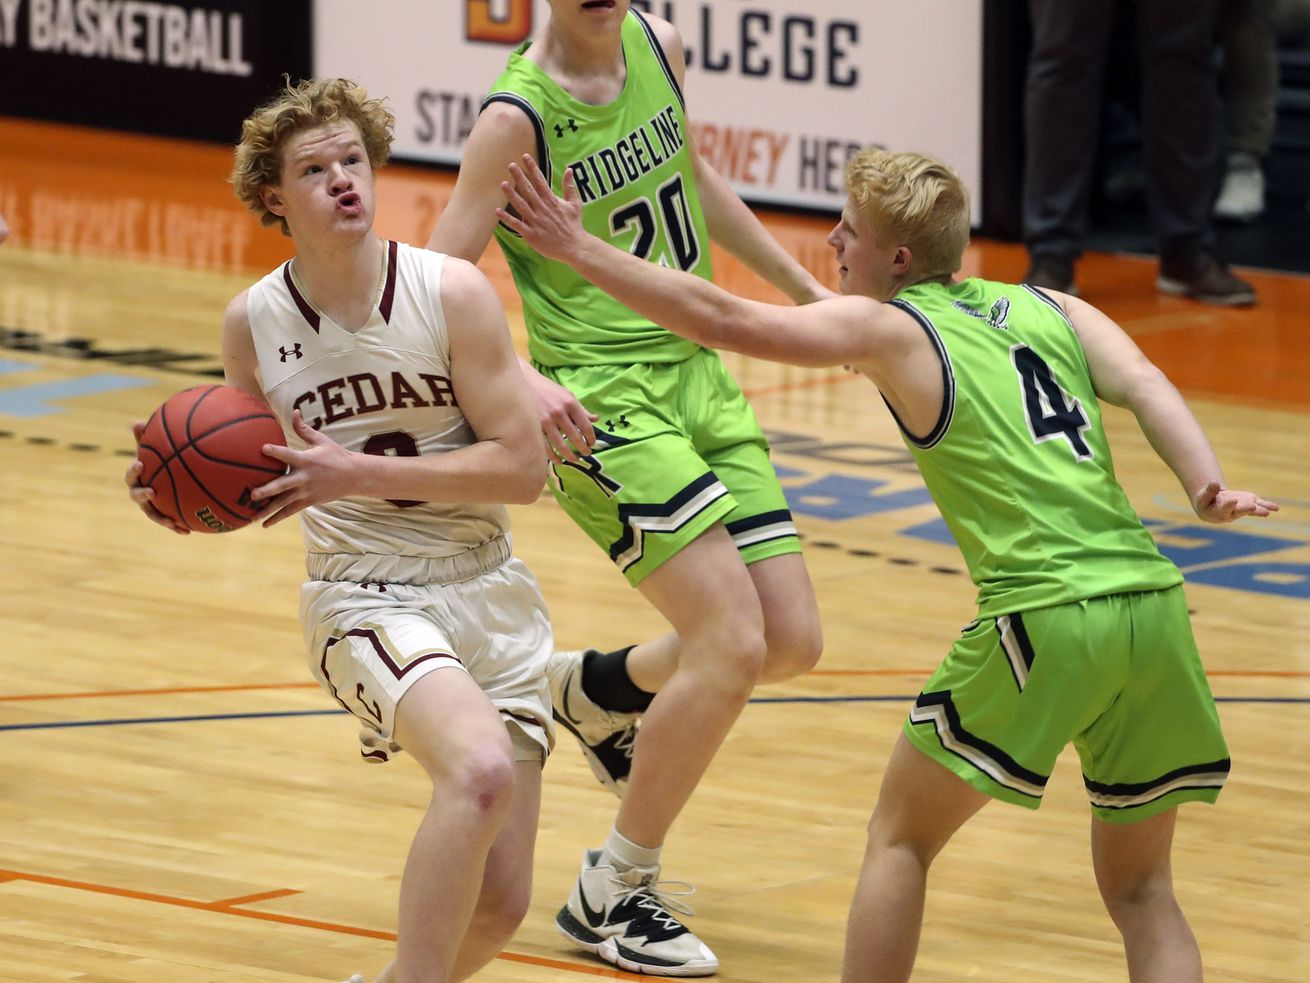 High school boys basketball: Cedar finds its groove as it marches into 4A title game with semifinal win over Ridgeline